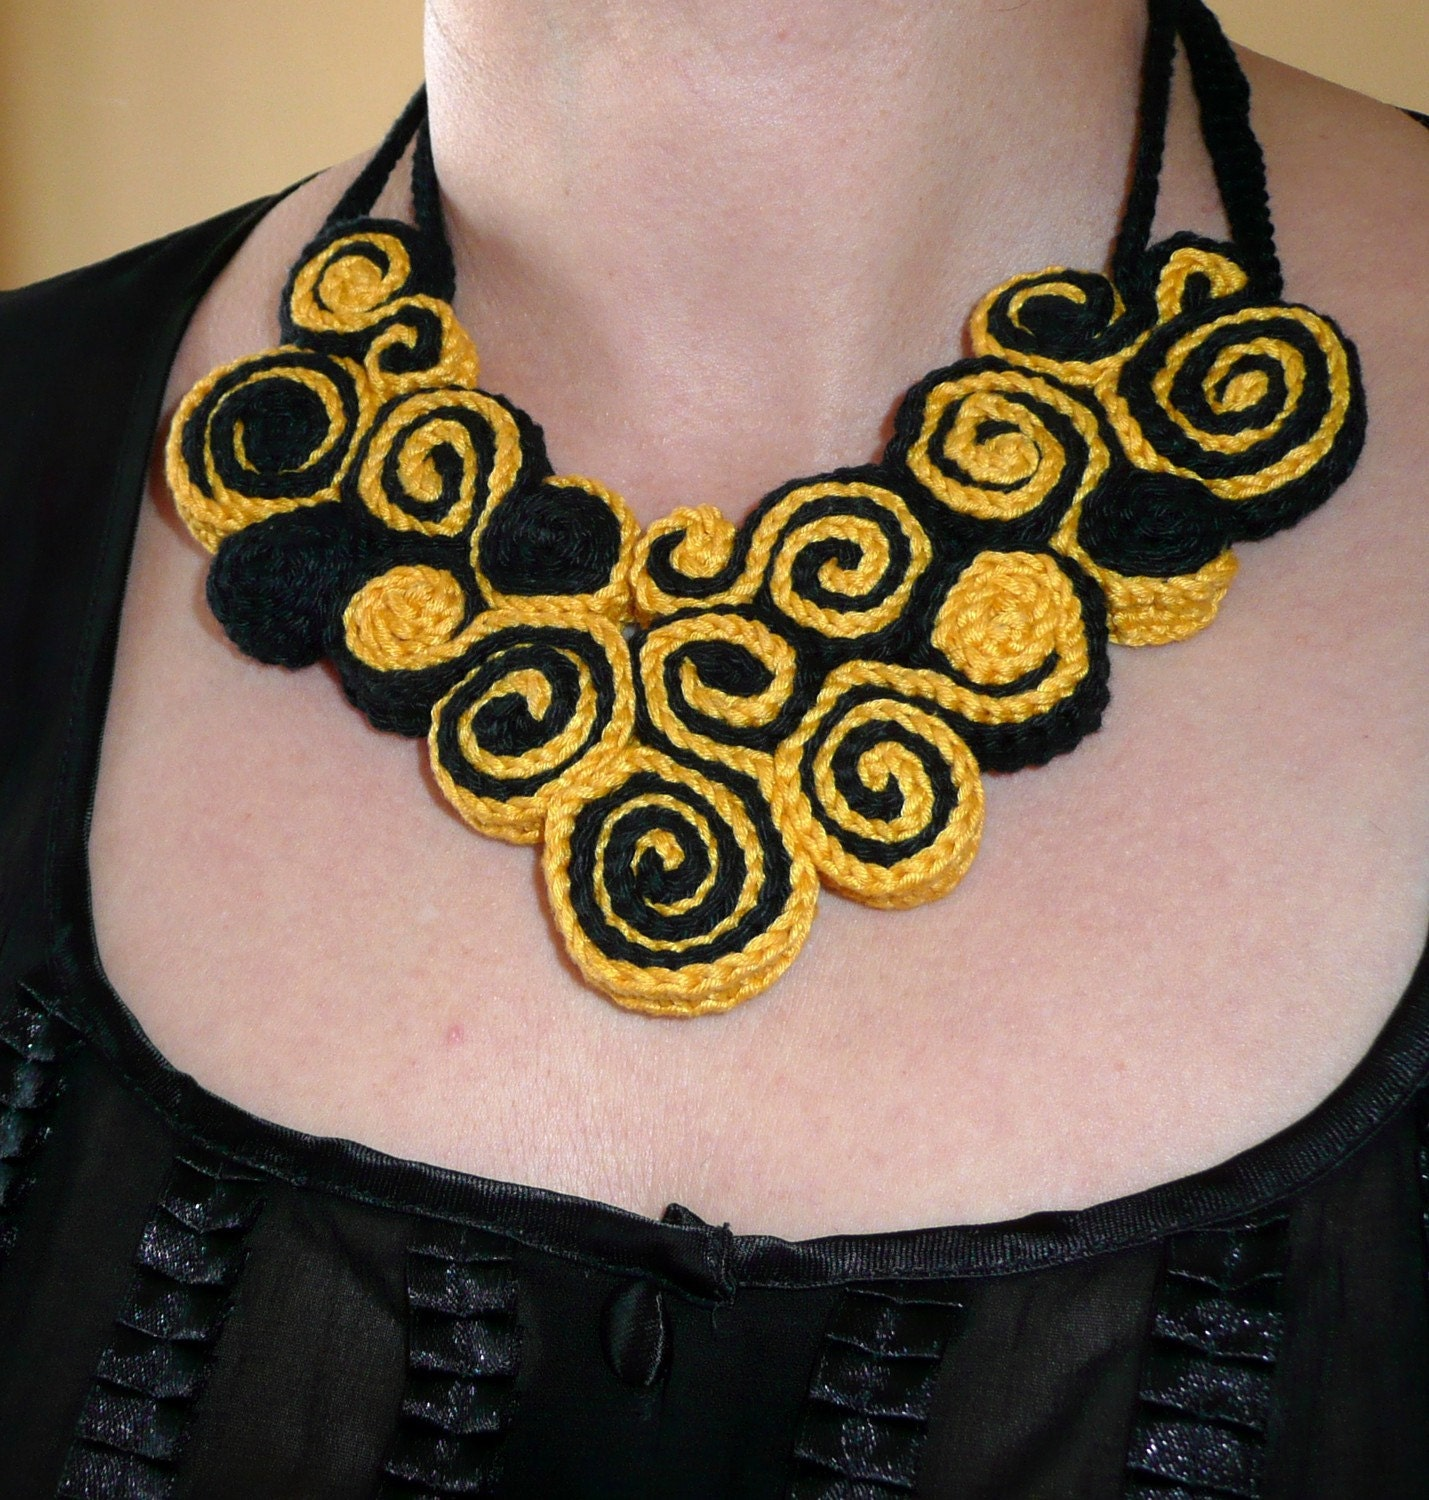 selling handmade crafts online: unique crochet jewelry